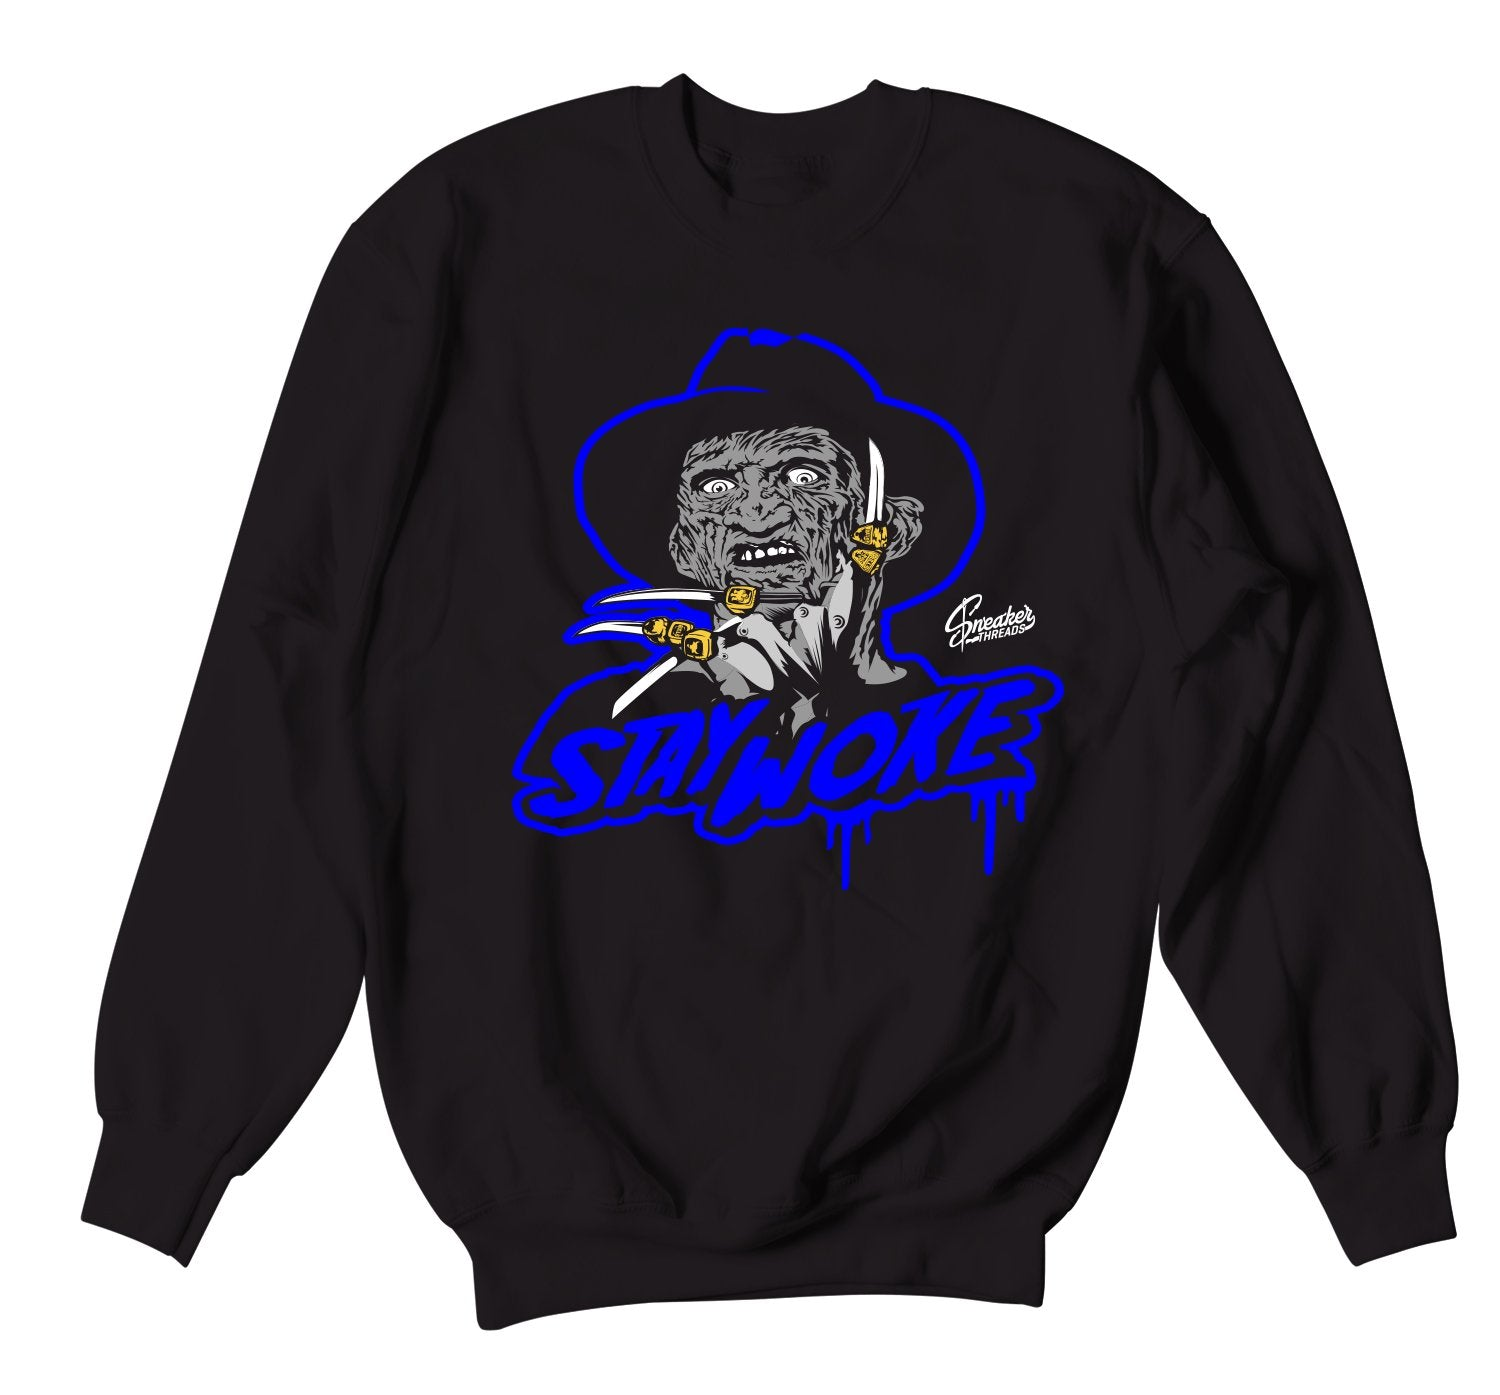 Racer Blue Jordan have matching crewnecks